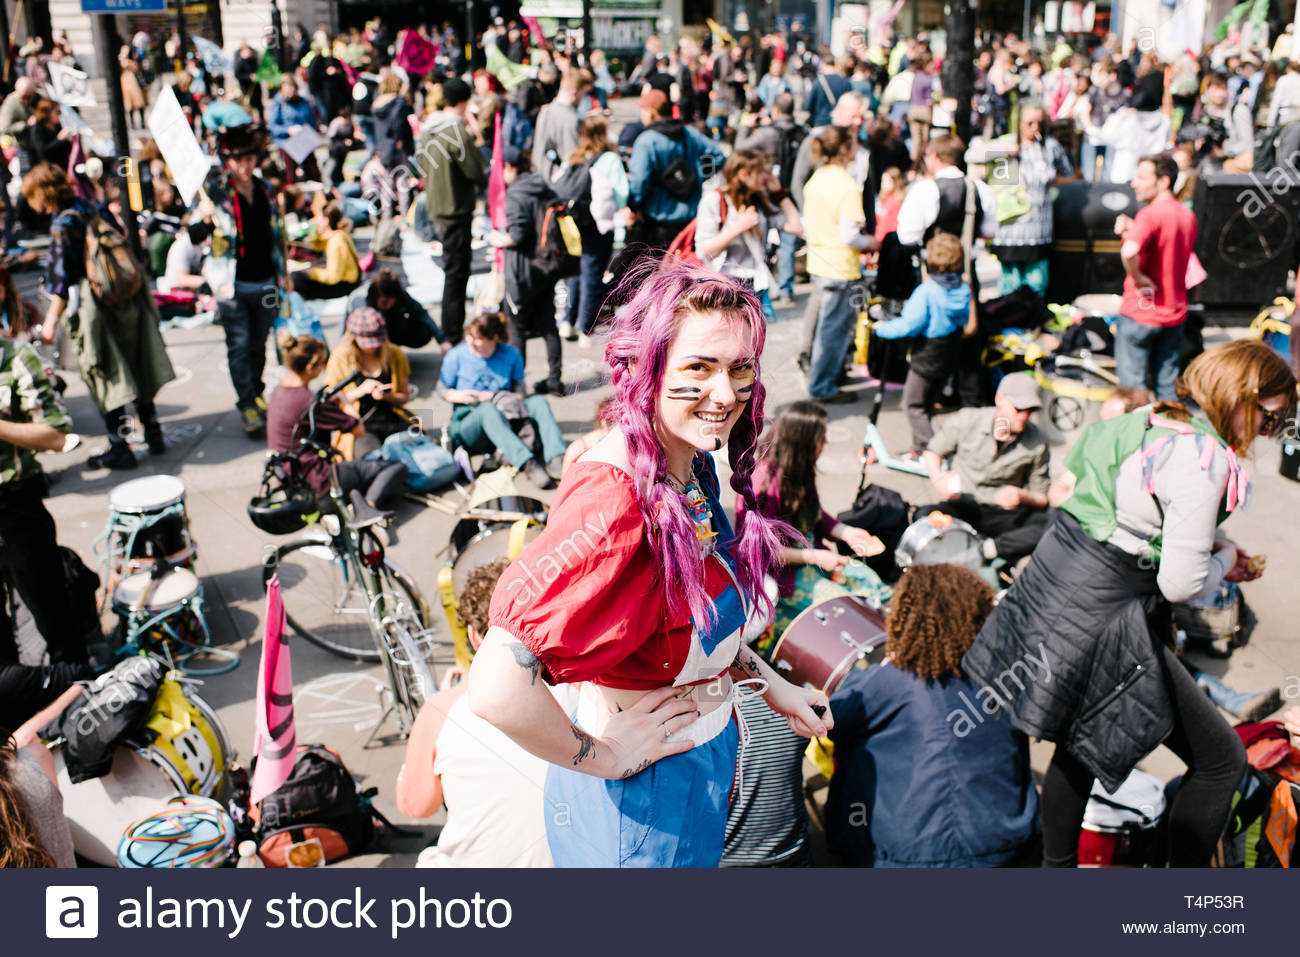 Picadilly Circus, Central London, UK. 15th April 2019. Extinction Rebellion demonstrators protesting on perceived inaction by the government on the en - Stock Image